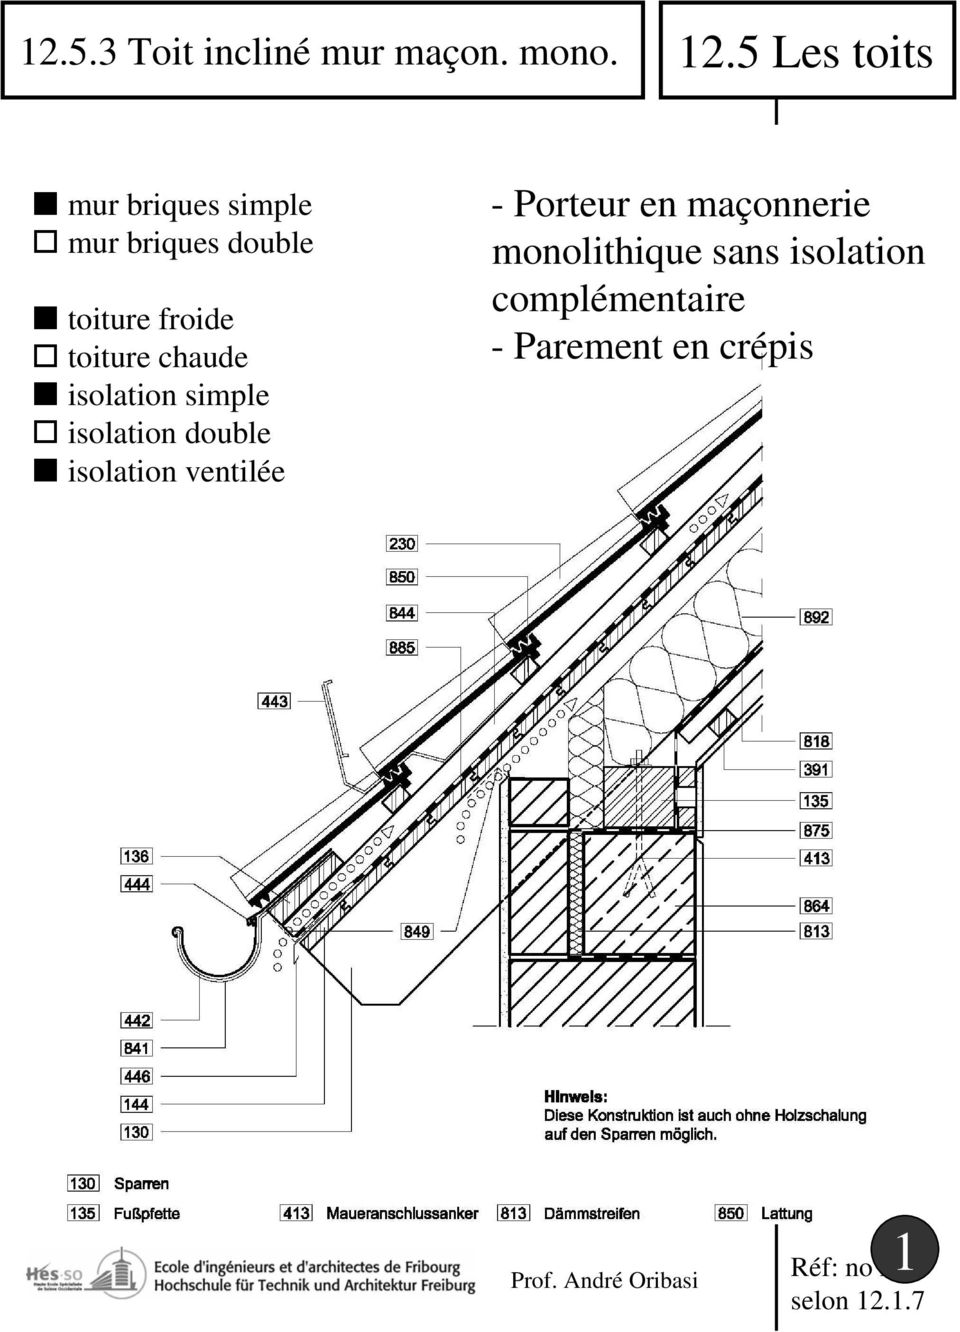 toiture chaude isolation simple isolation double isolation ventilée